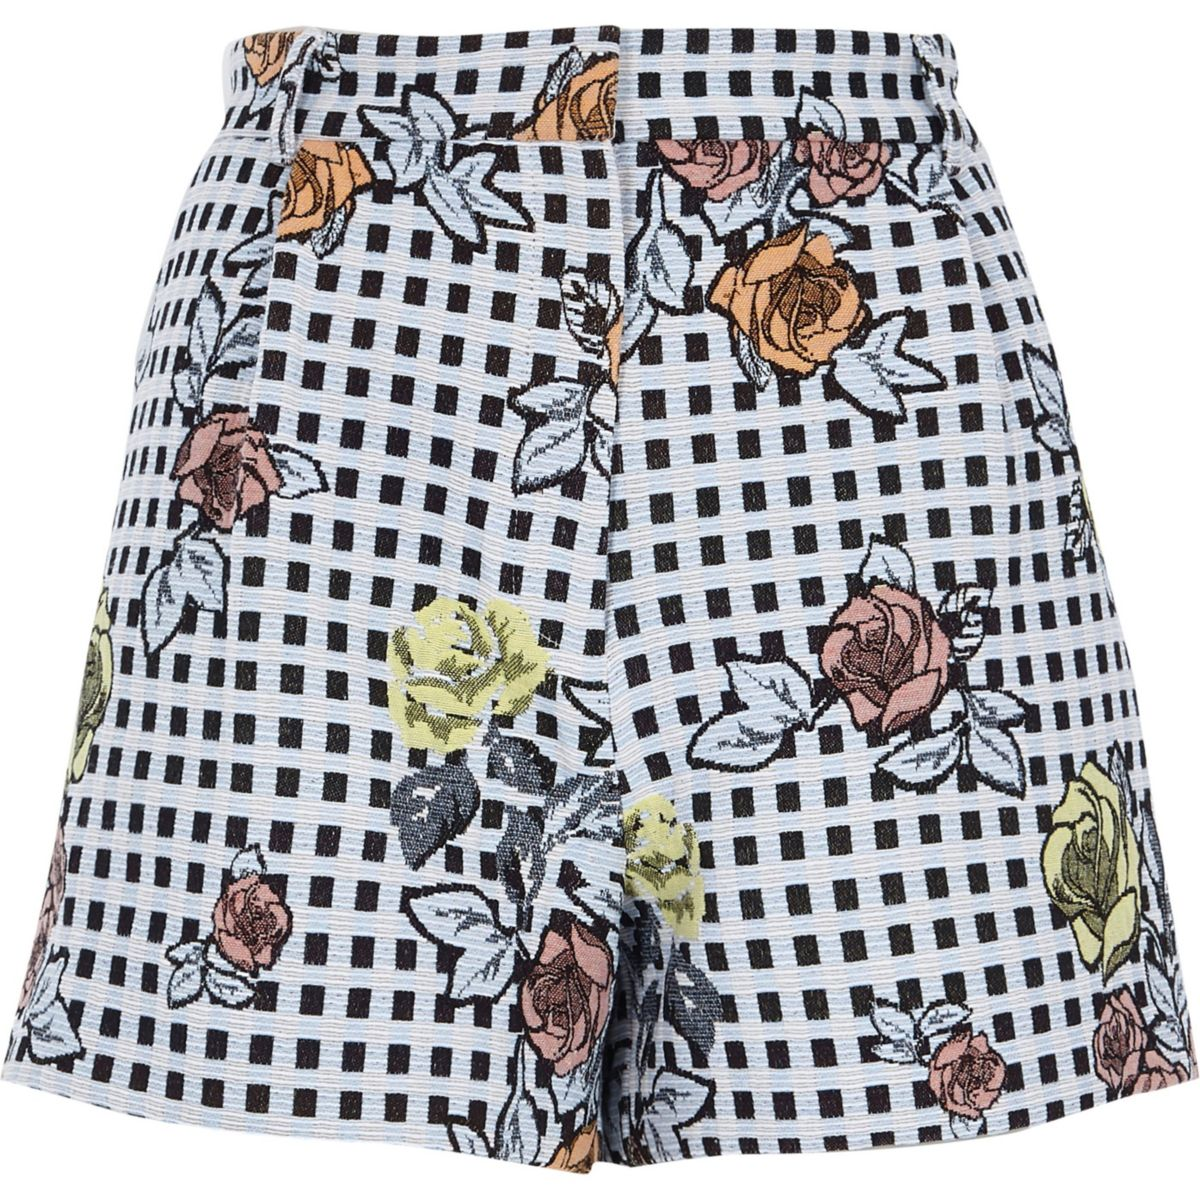 Blue check floral embroidered shorts